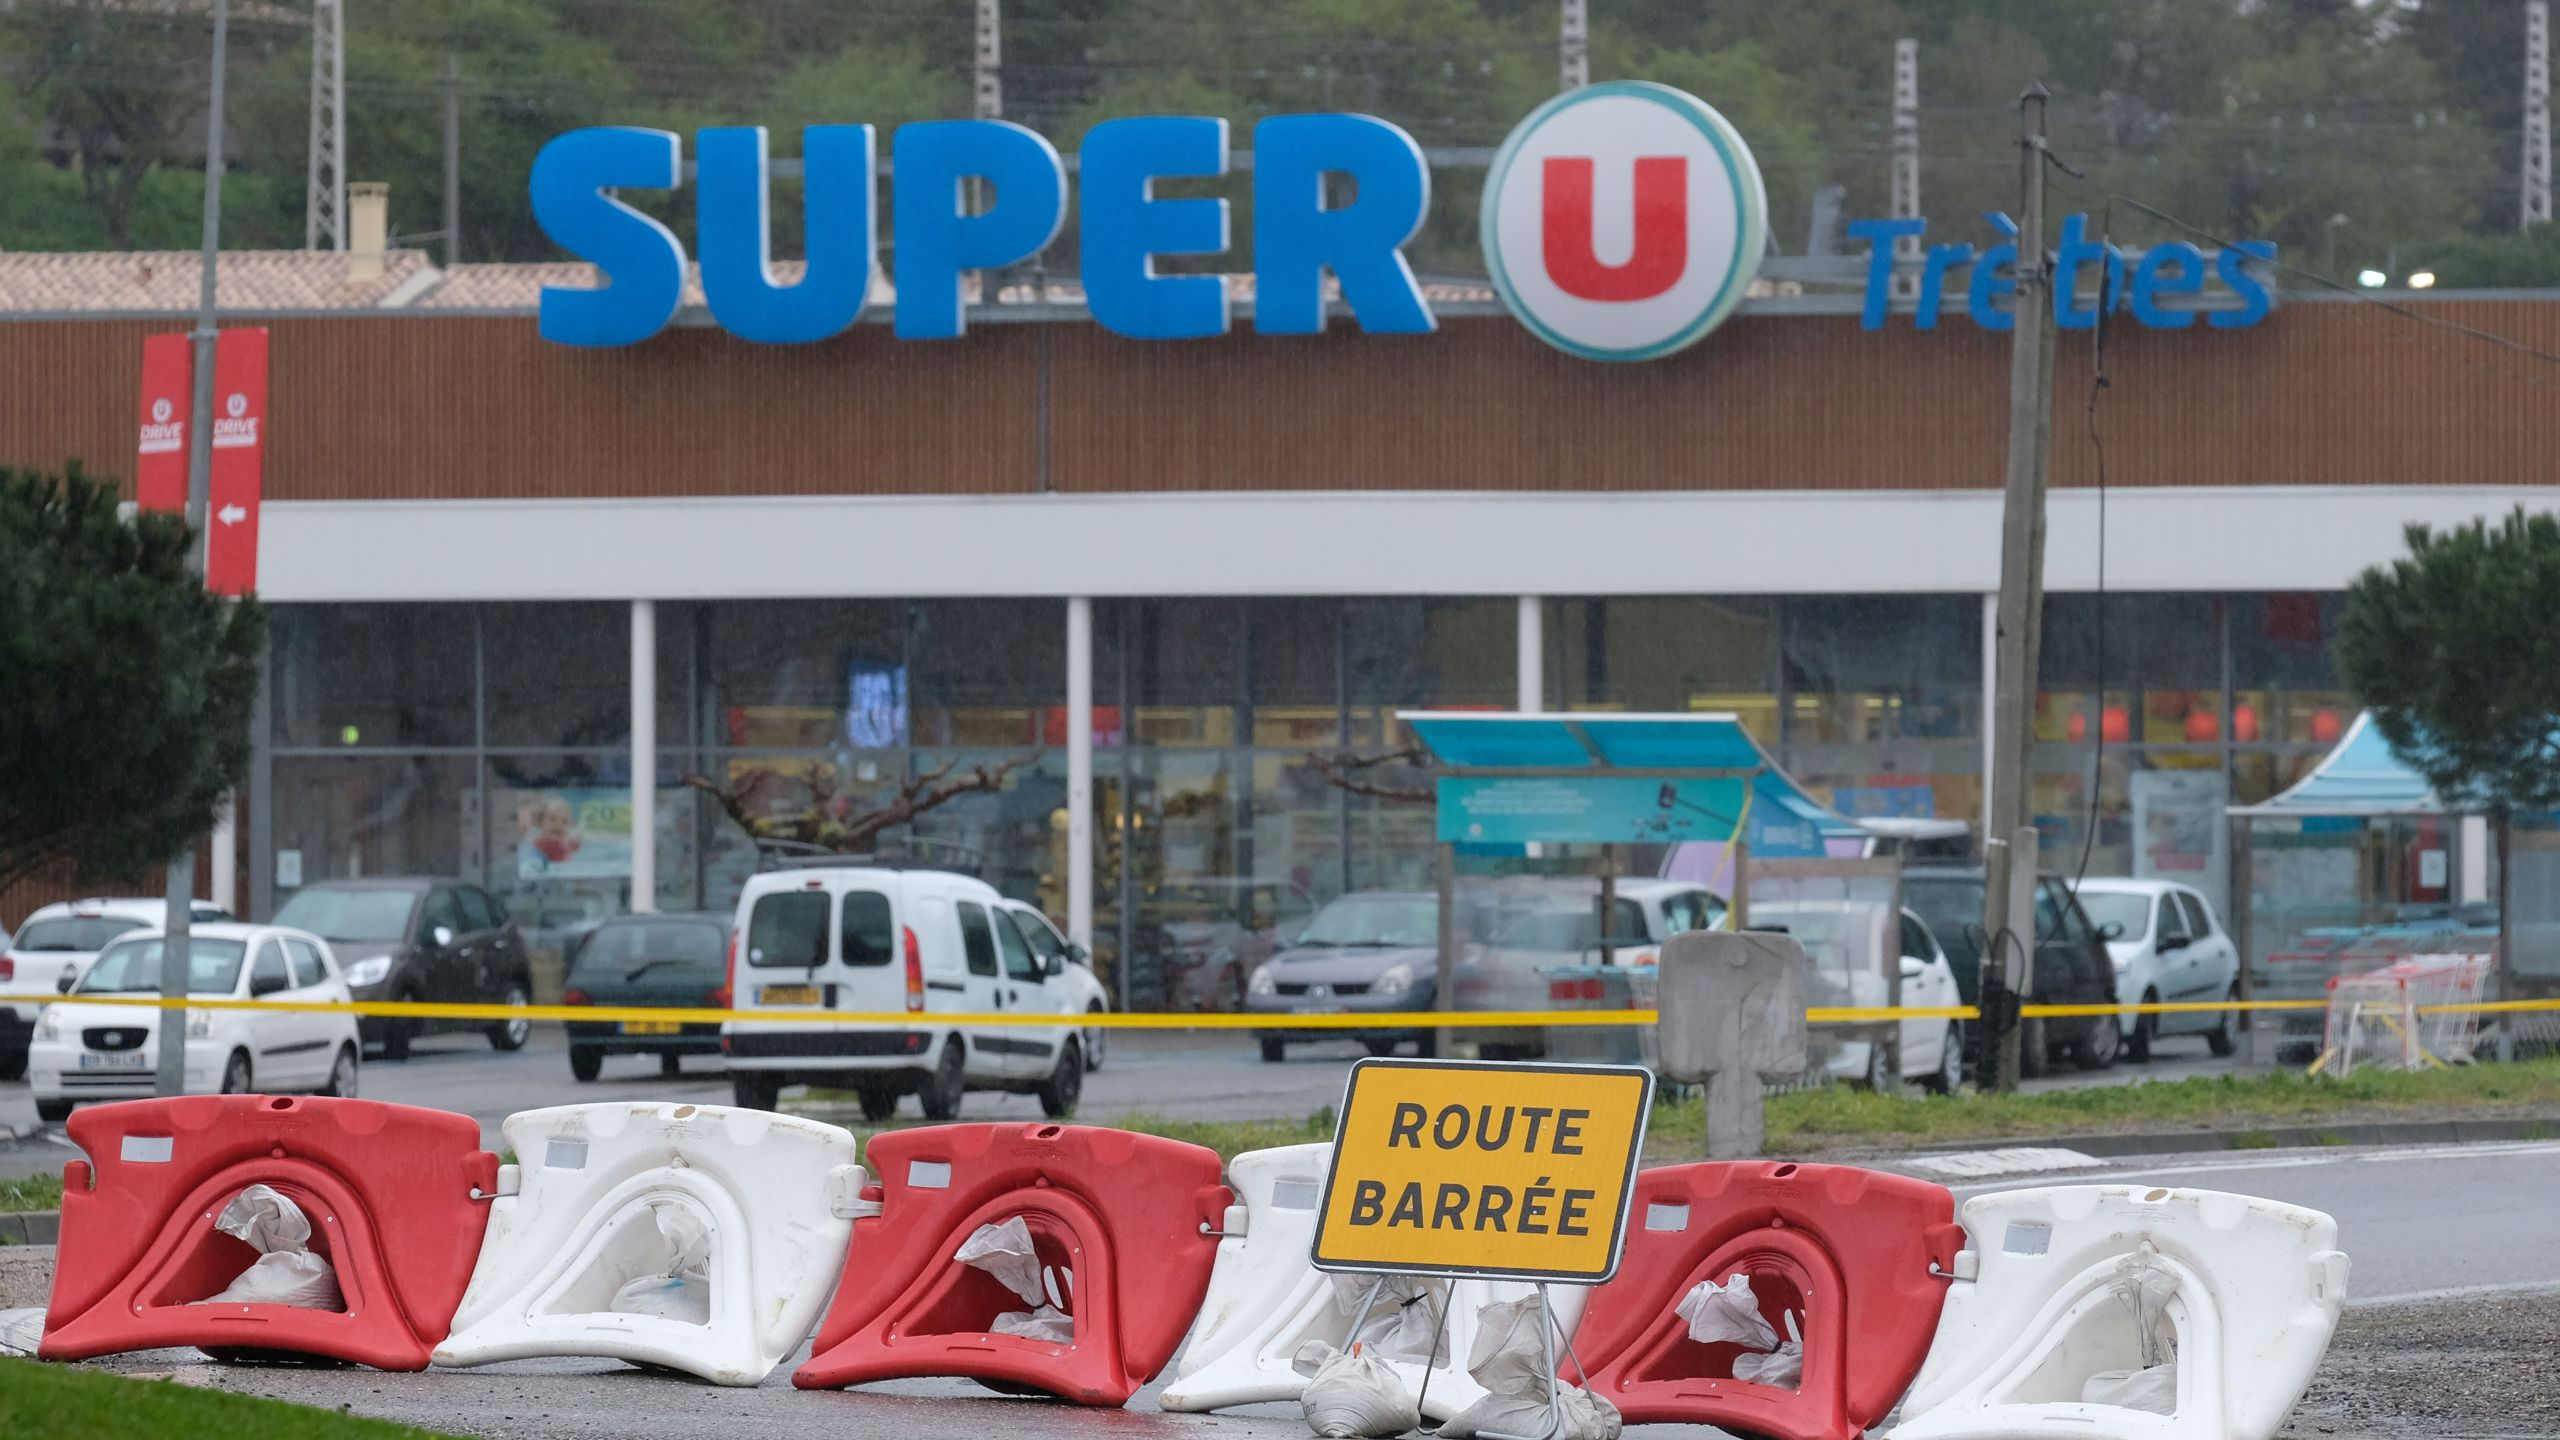 """This picture taken in the town of Trebes, southwestern France on March 24, 2018 shows a sign reading """"Closed road"""" at the entrance of the Super U supermarket where a gunman took hostages in a string of attacks that left a total of four people dead. (Credit: Eric Cabanis/AFP/Getty Images)"""